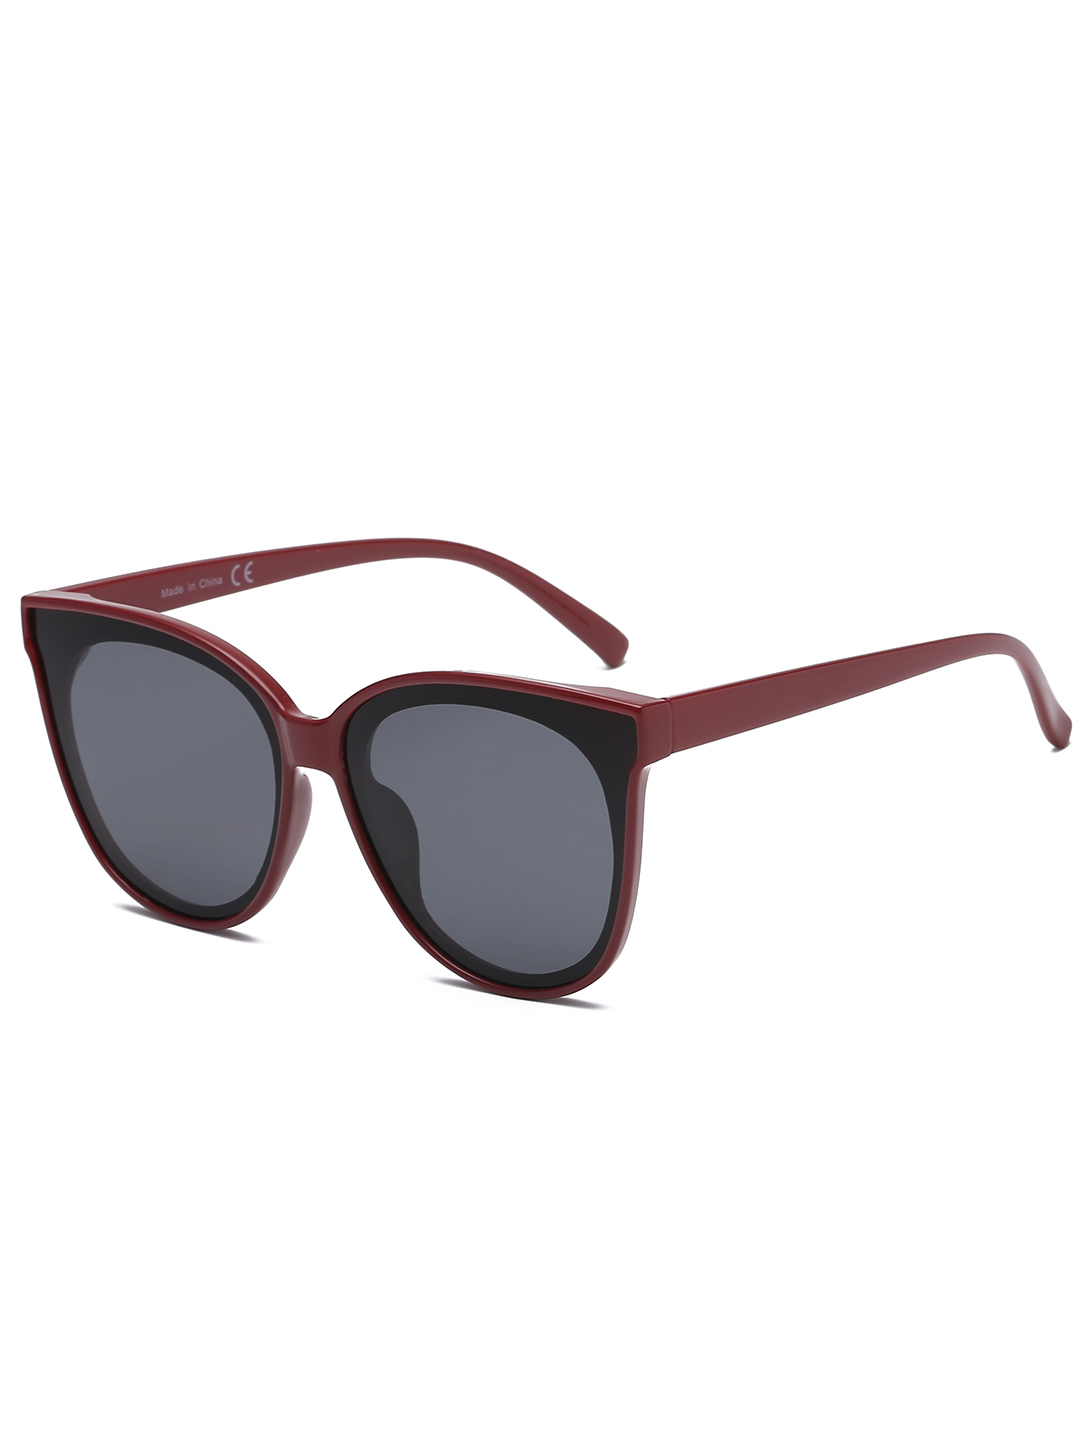 Round Cat-Eye Sunglasses - Maroon - Front